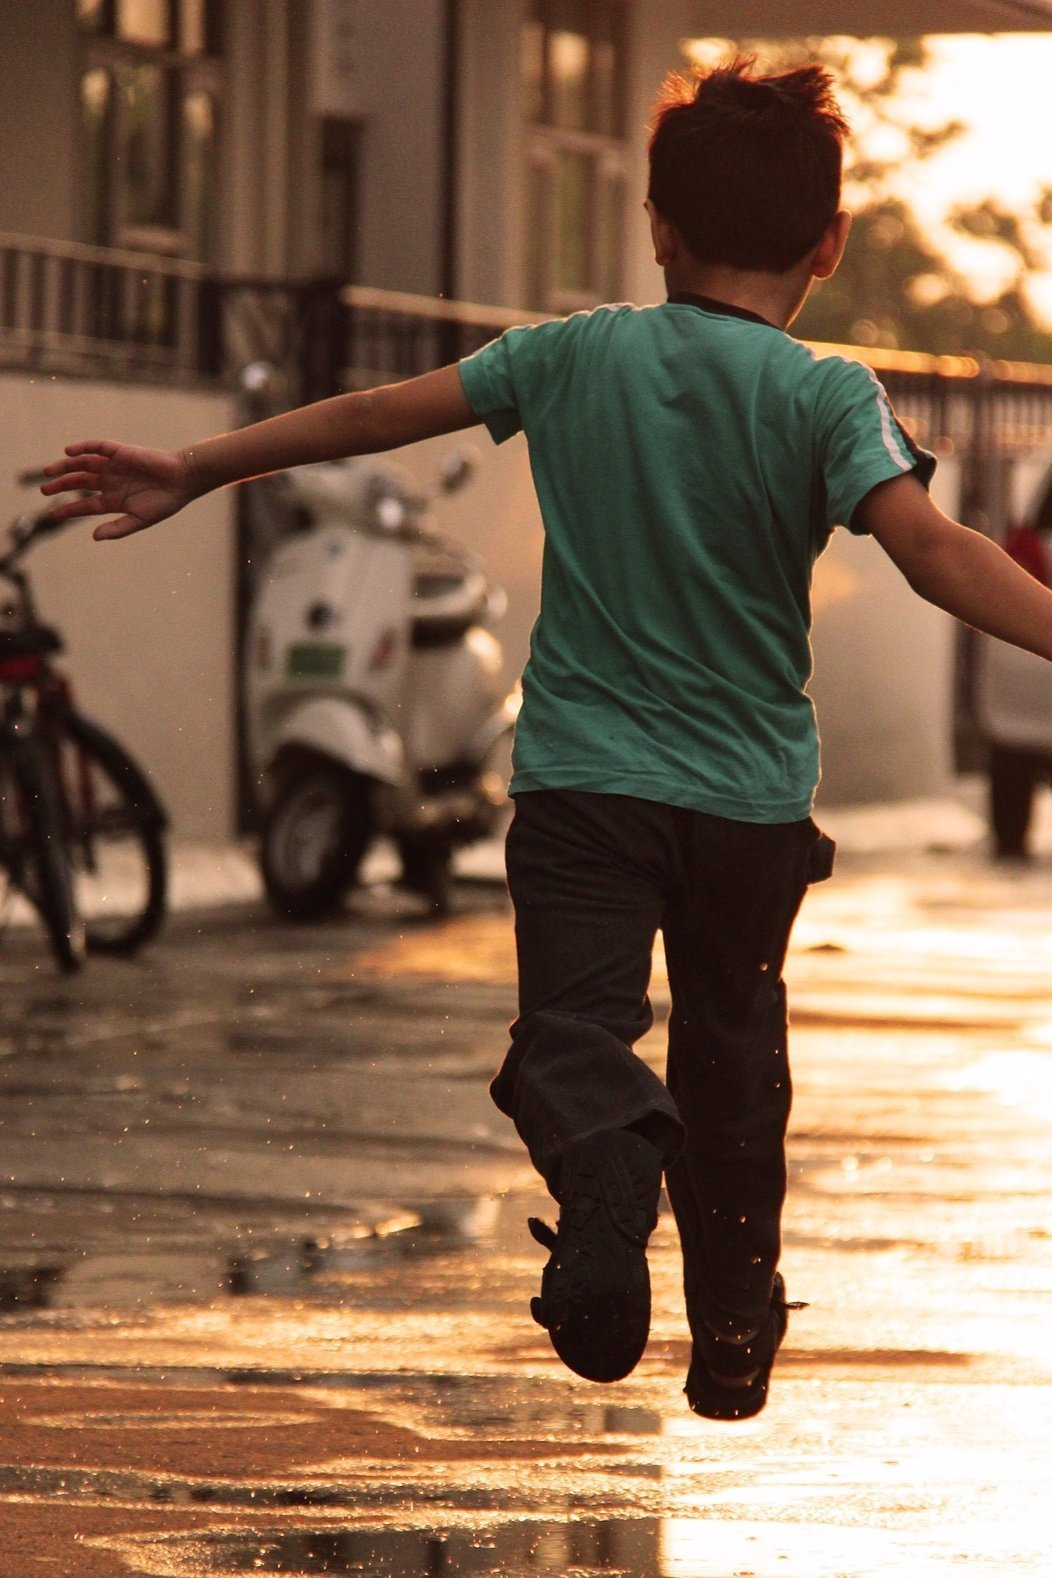 boy in green shirt running down wet street